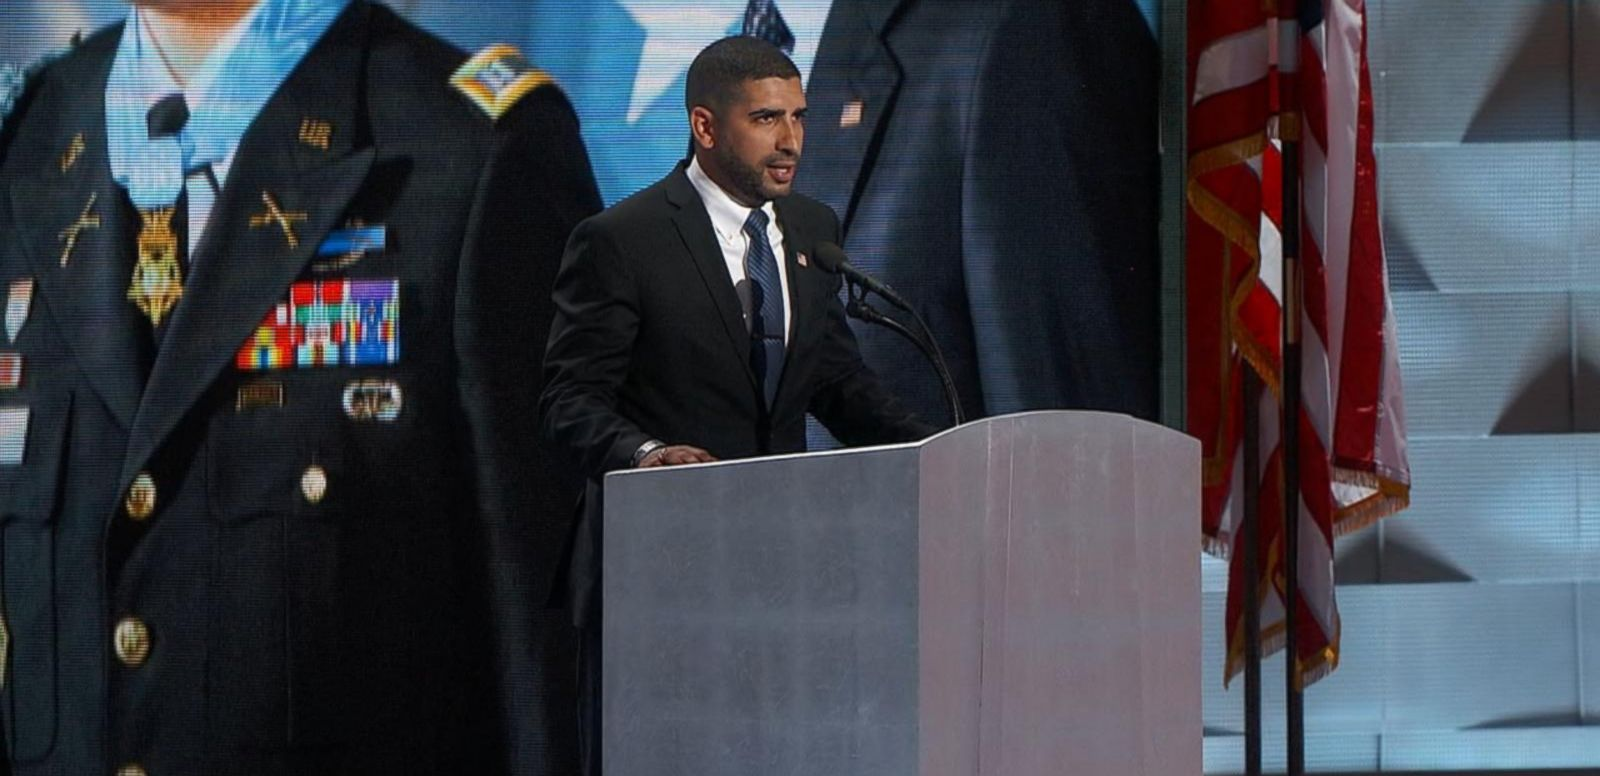 VIDEO: Ret. US Army Capt. Florent Groberg Speaks at the Democratic National Convention